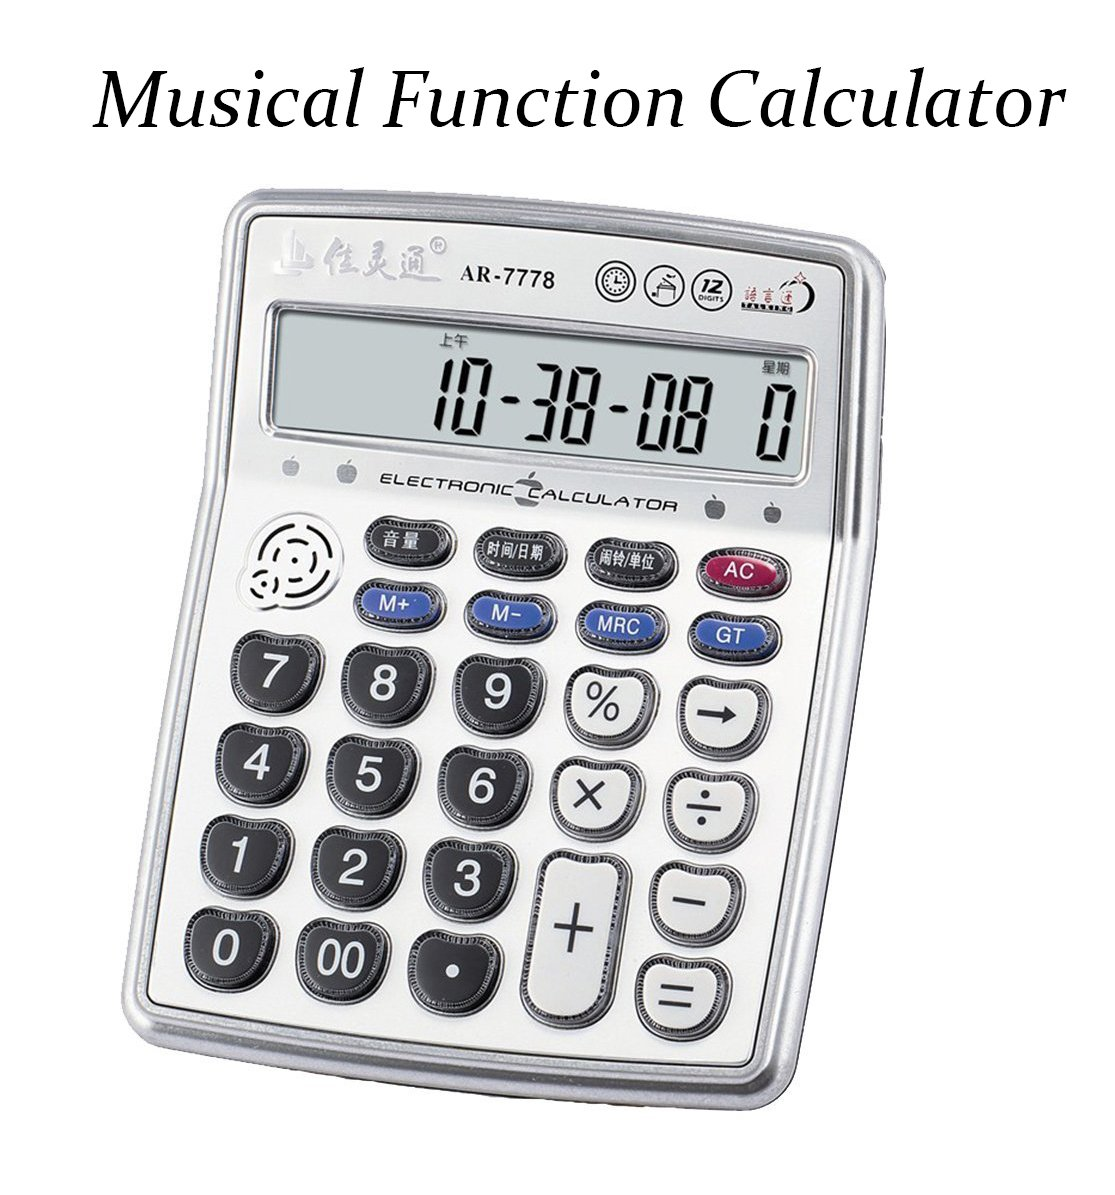 Amazon ar 7778 musical function calculator portable 12 amazon ar 7778 musical function calculator portable 12 digits lcd display calculator with alarm clock and voice reading and mini instrument functions falaconquin